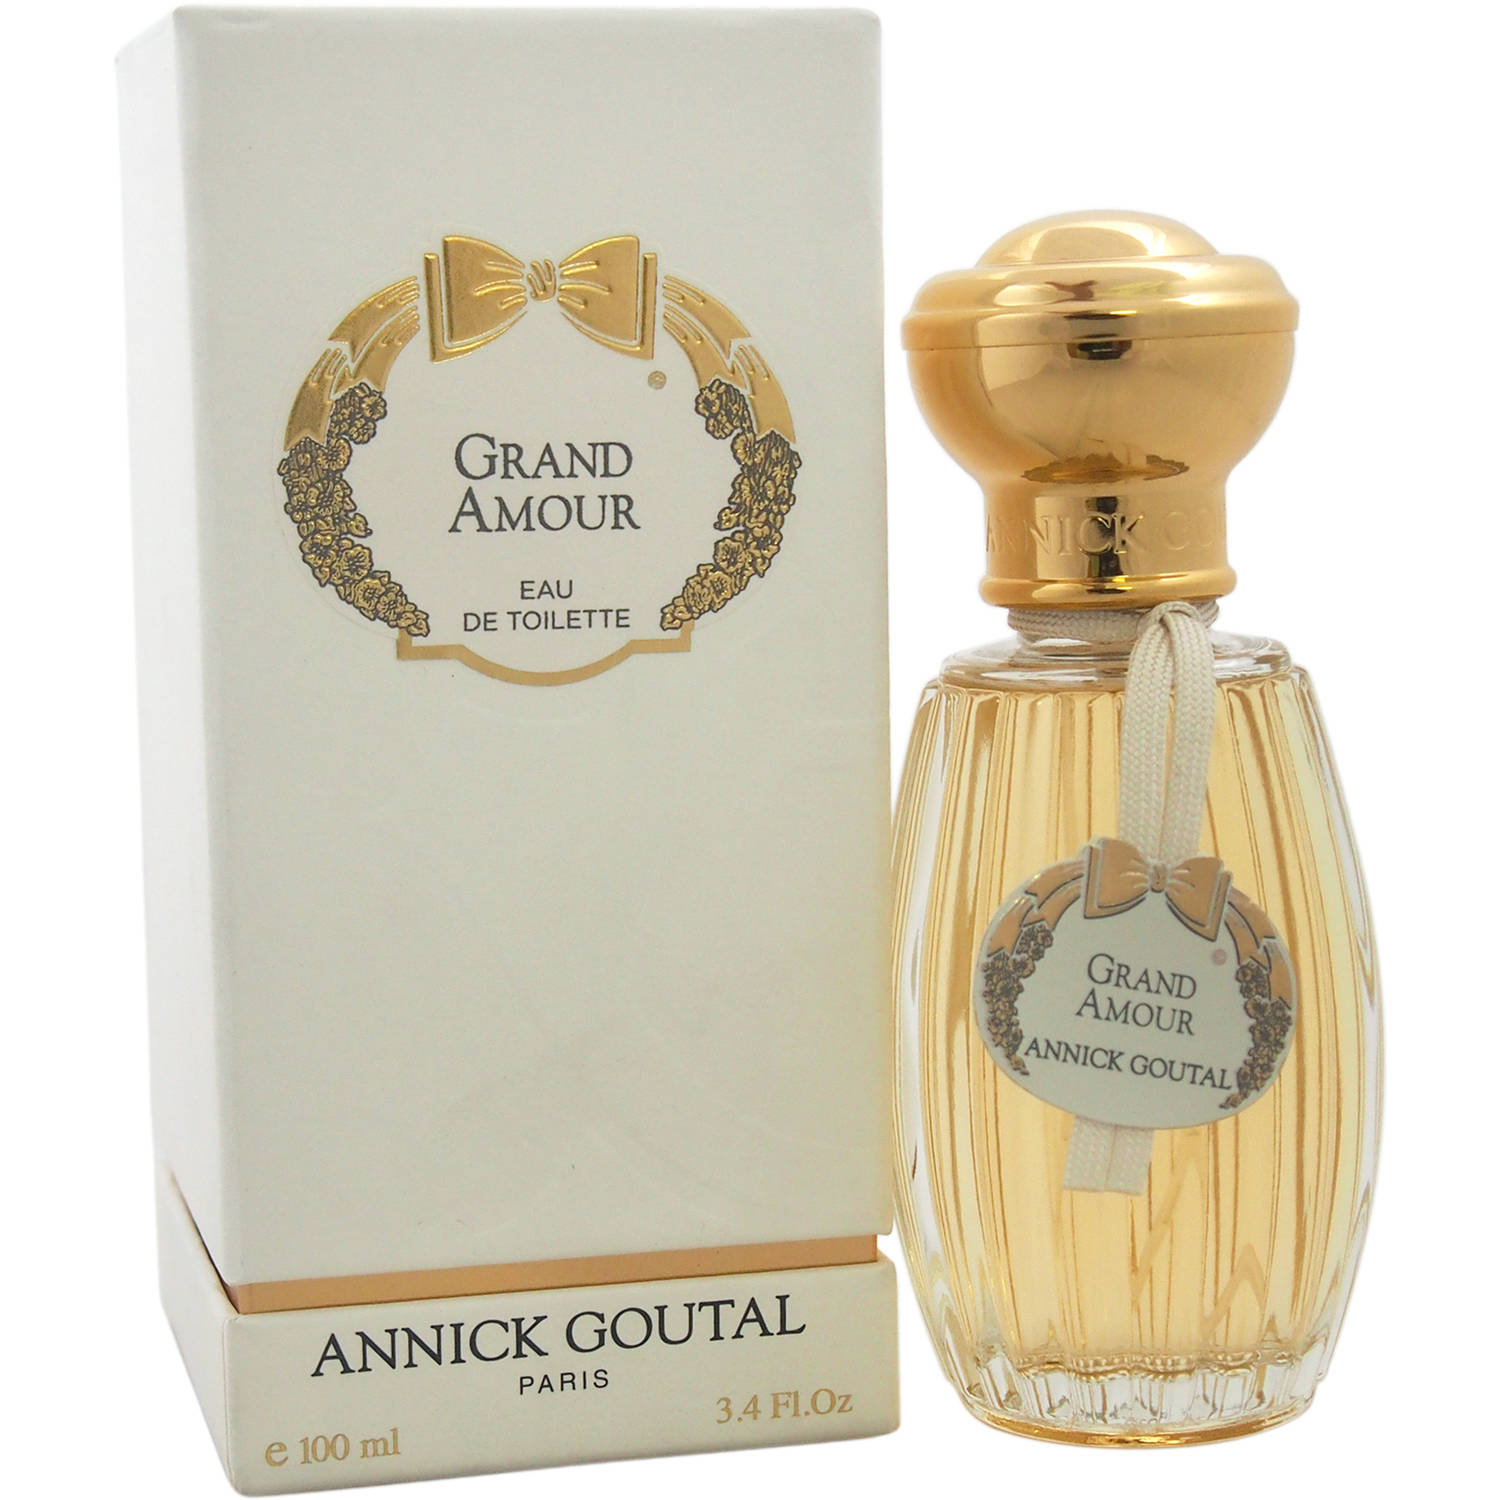 Annick Goutal Grand Amour EDT Spray, 3.4 oz